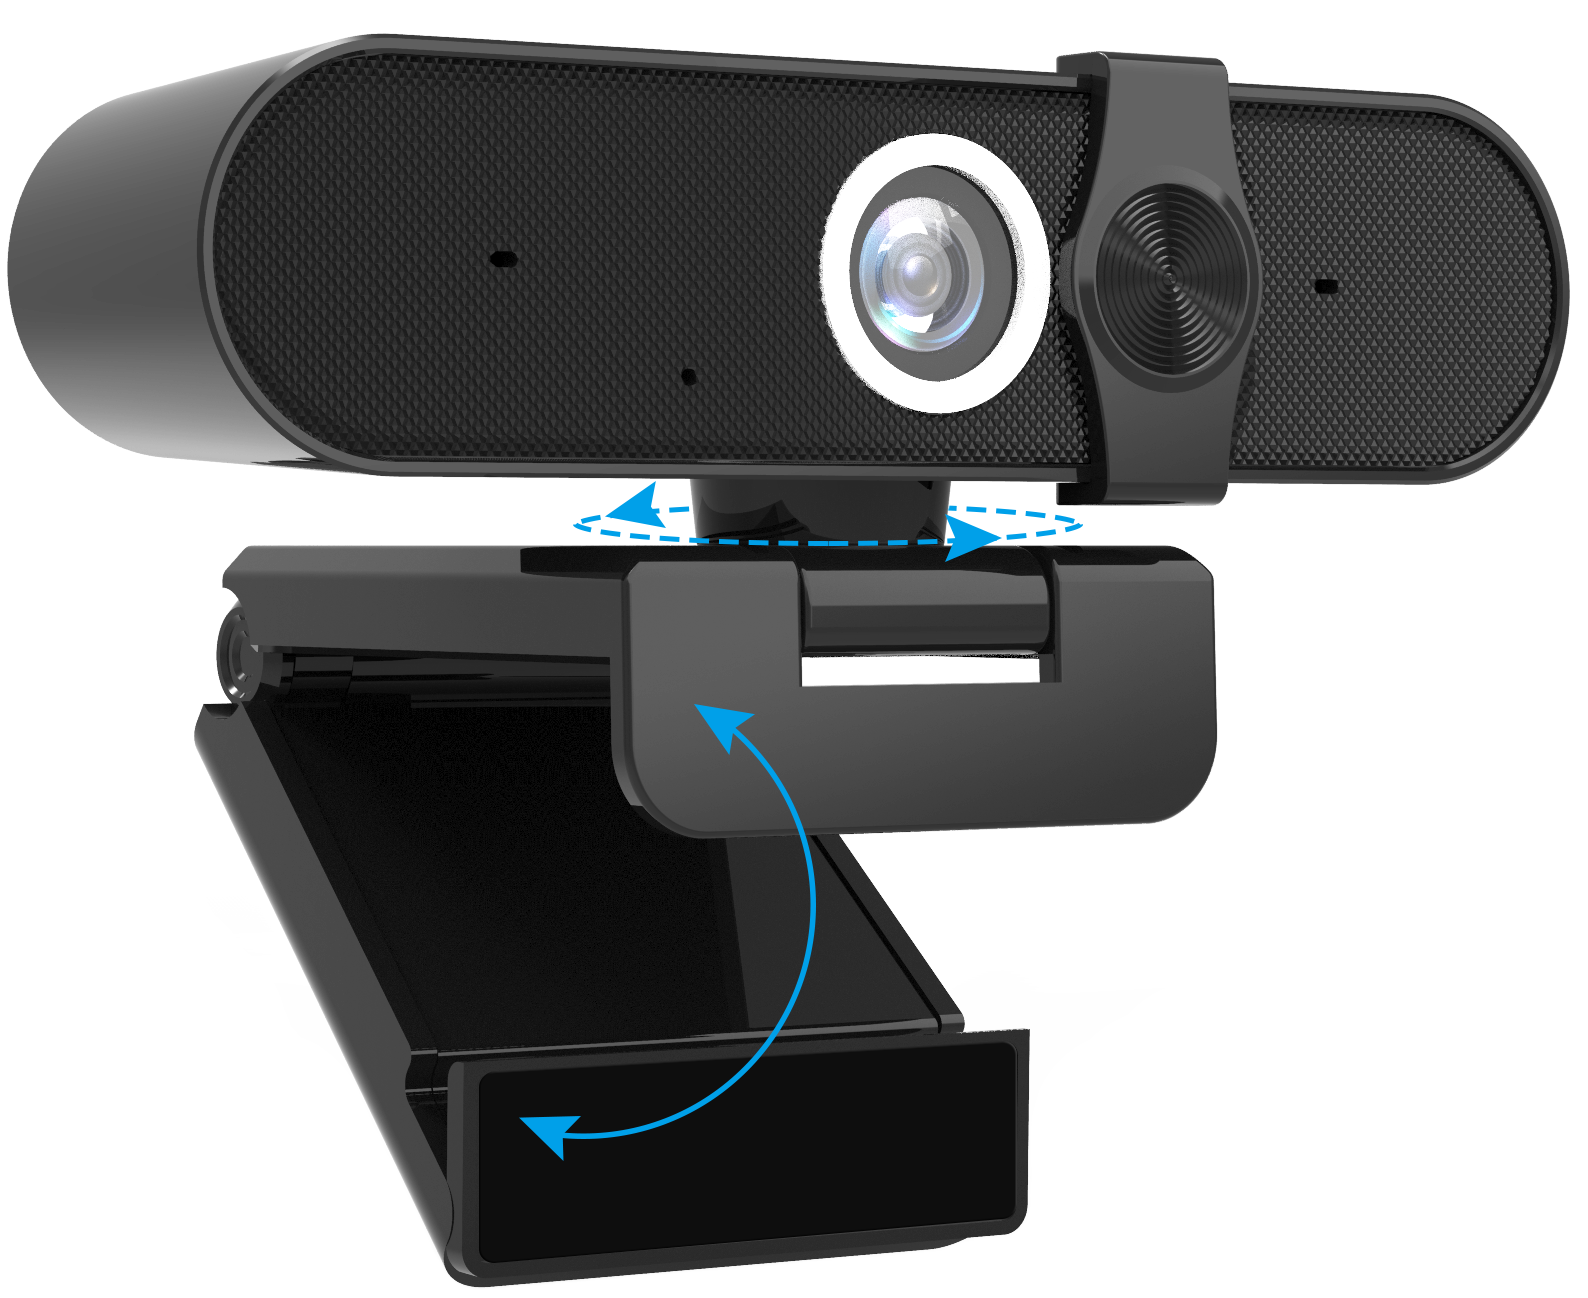 Full HD Manual Focus PC computer Video conference Webcam with slider cover